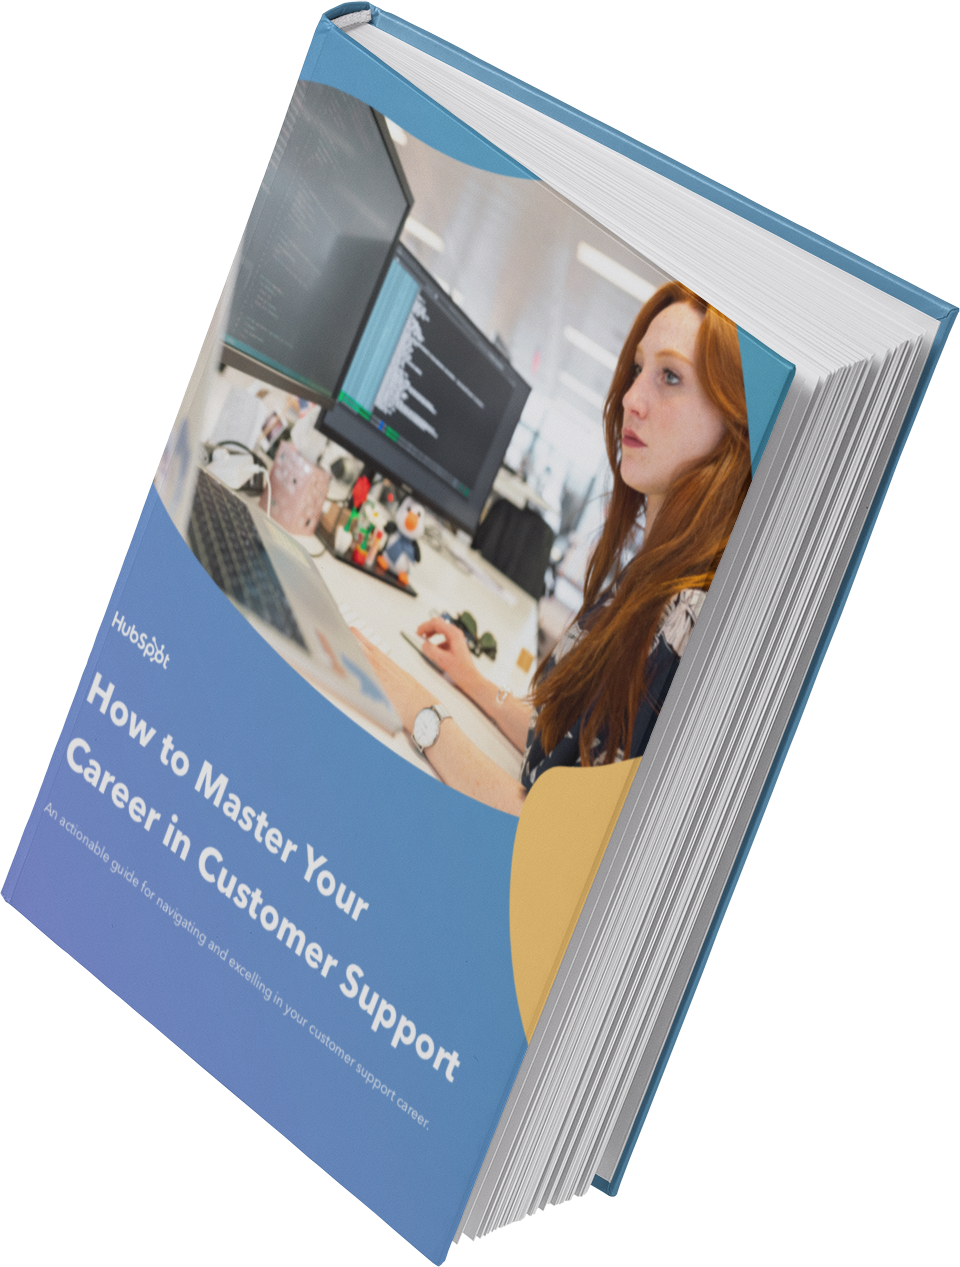 How to Master Your Customer Support Career